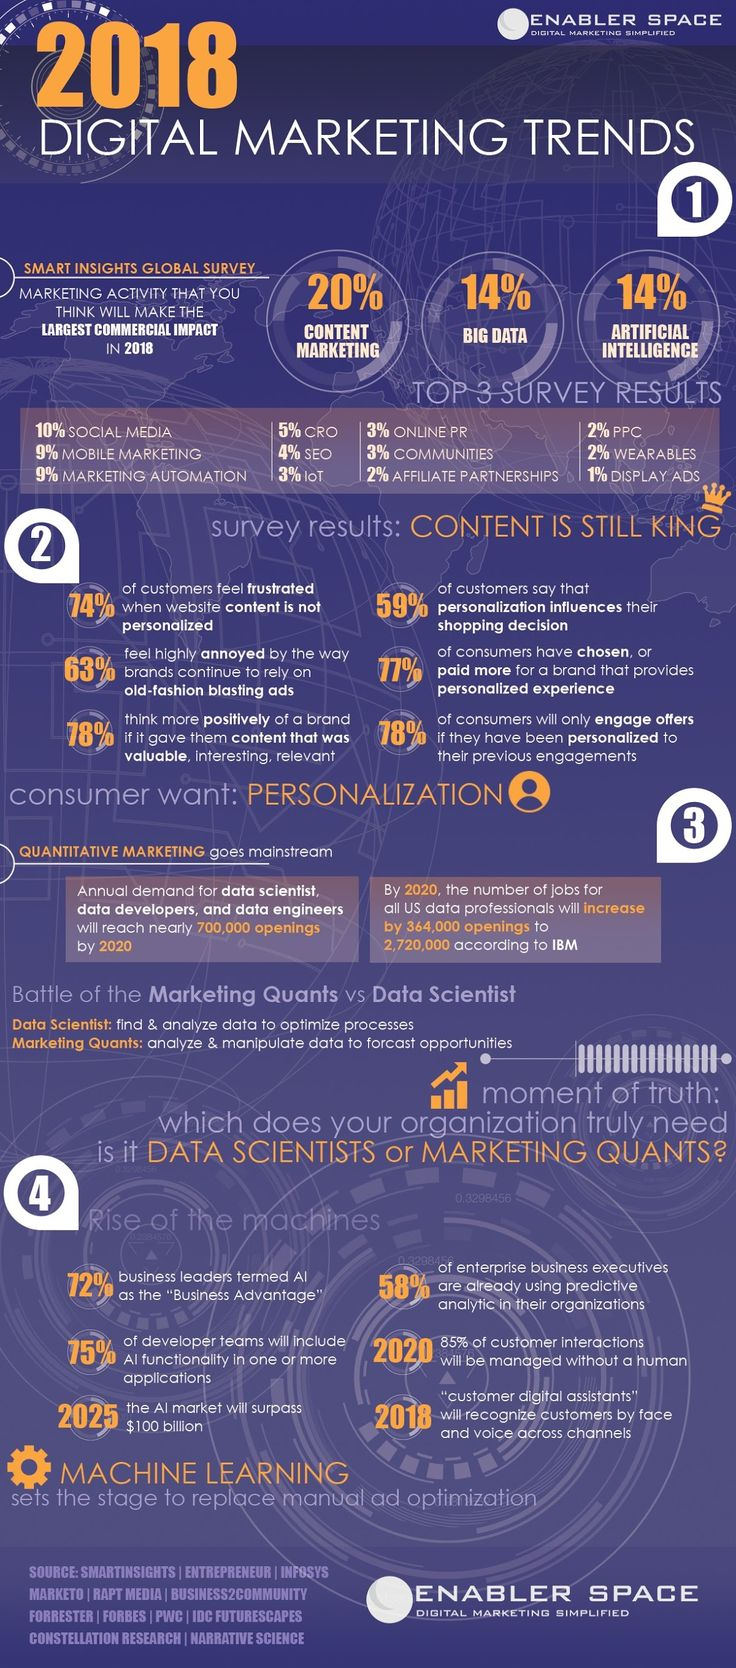 2018 Digital Marketing Trends and Statistics #digitalmarketing #strategy #2018